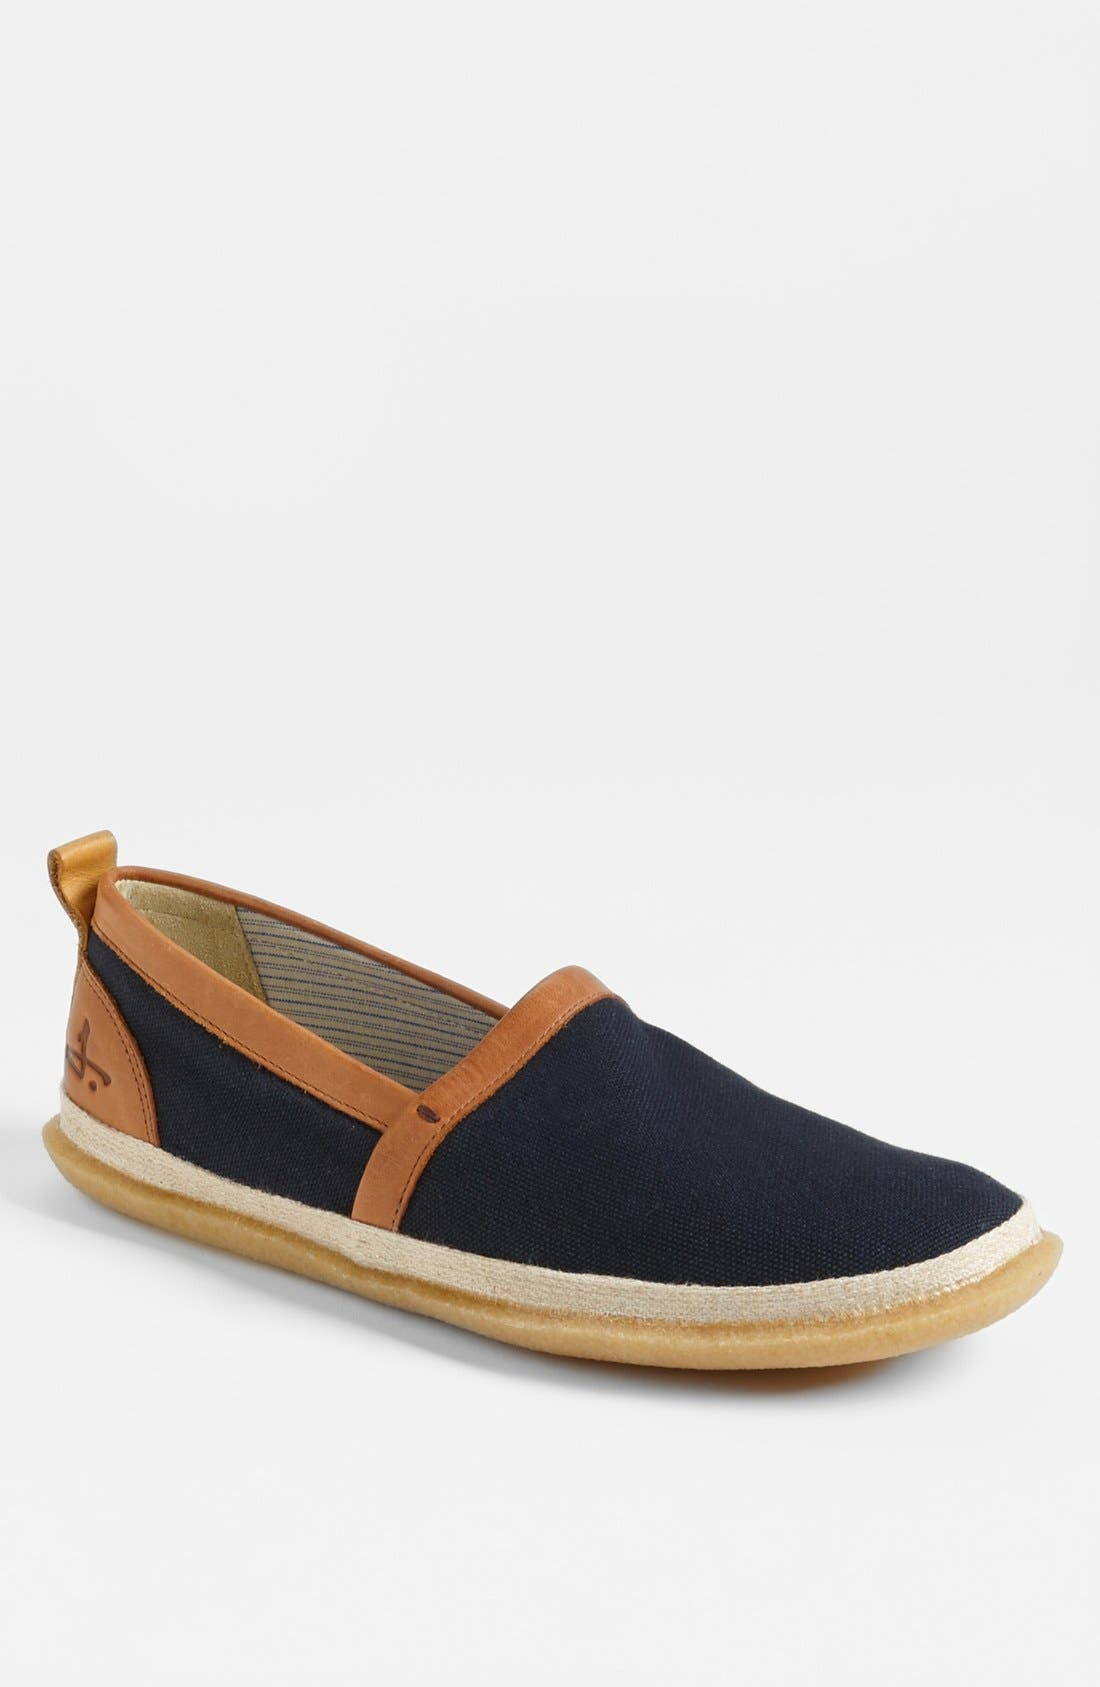 Alternate Image 1 Selected - J SHOES 'Anglo' Slip-On